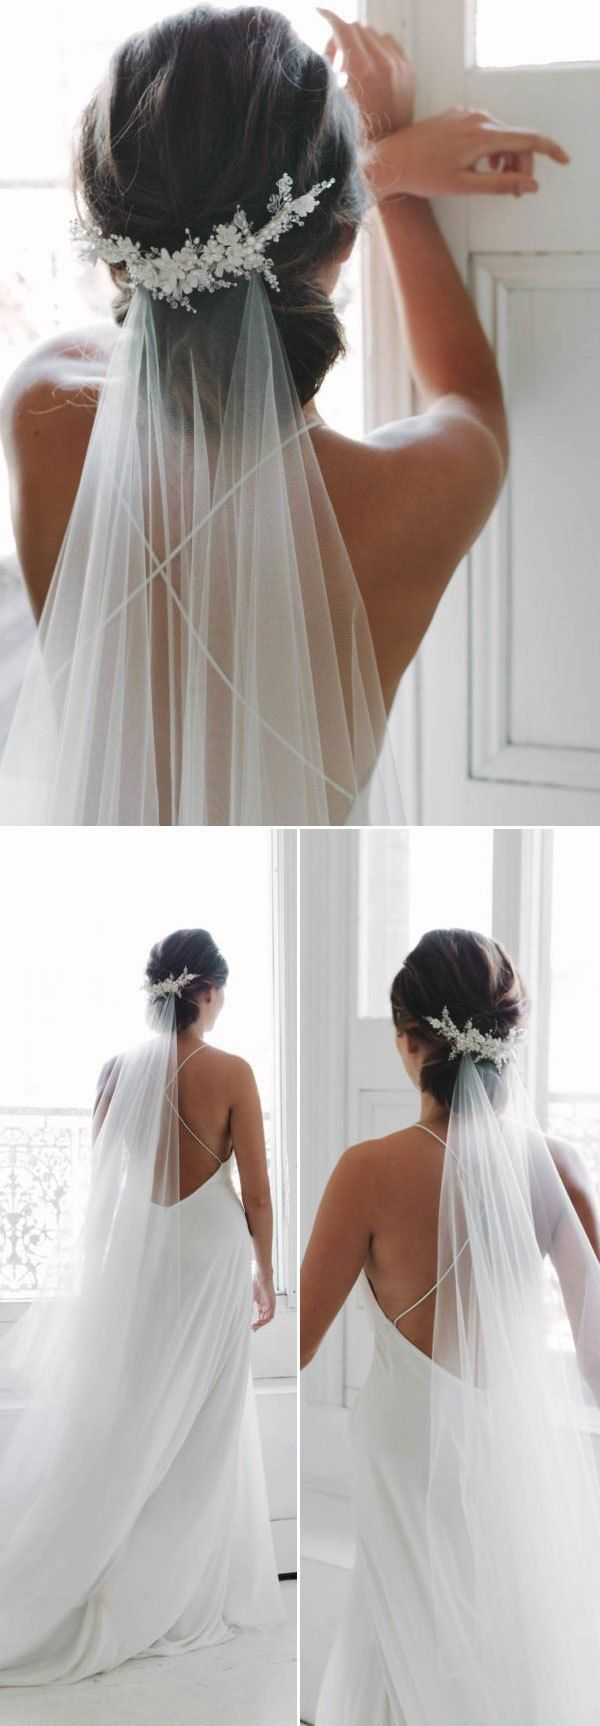 Top 20 Wedding Hairstyles with Veils and Accessories | Casual hair ...